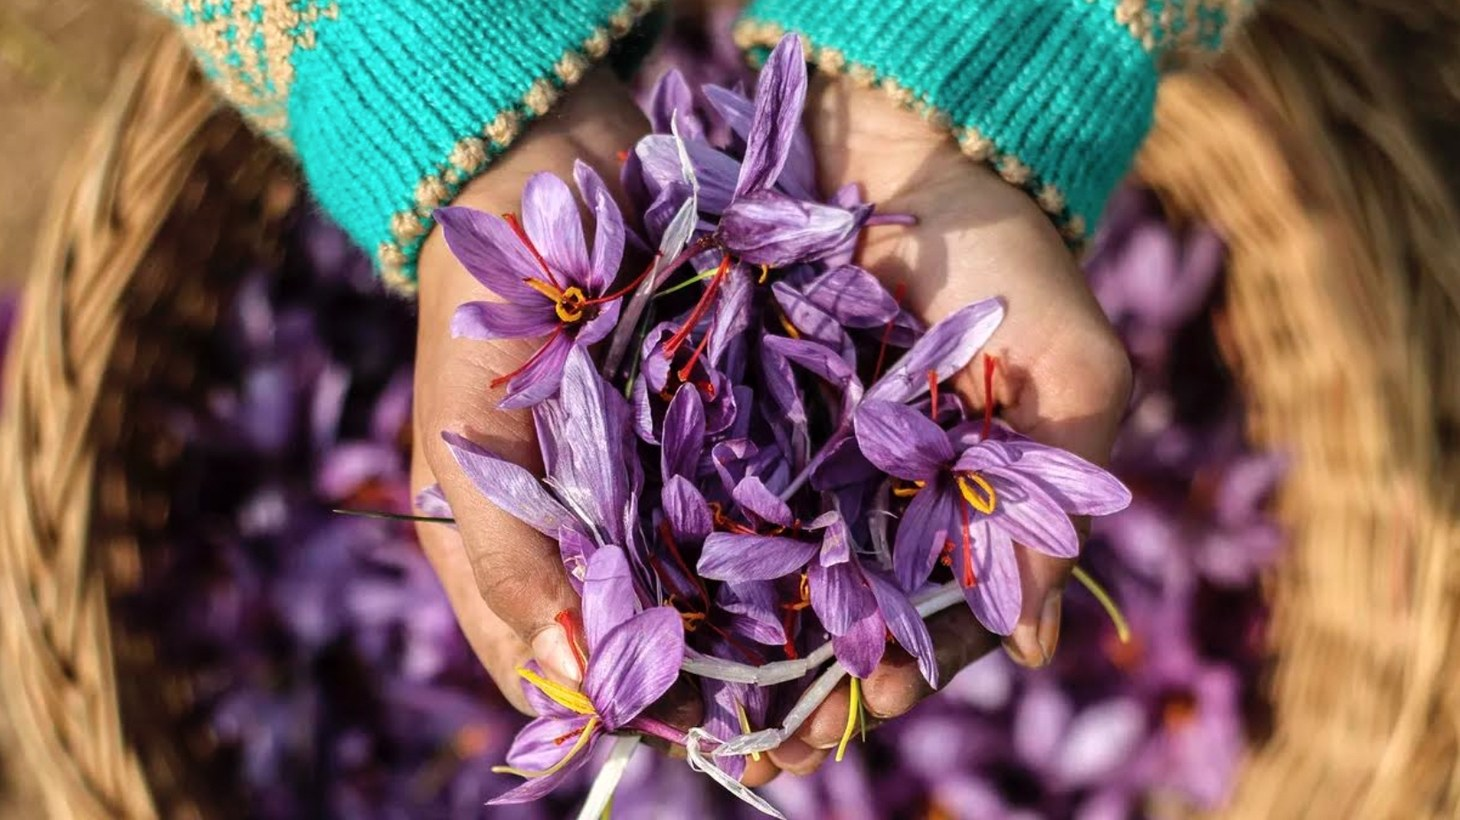 Kashmiri saffron is the most precious spice in the world, and it's on the verge of extinction.